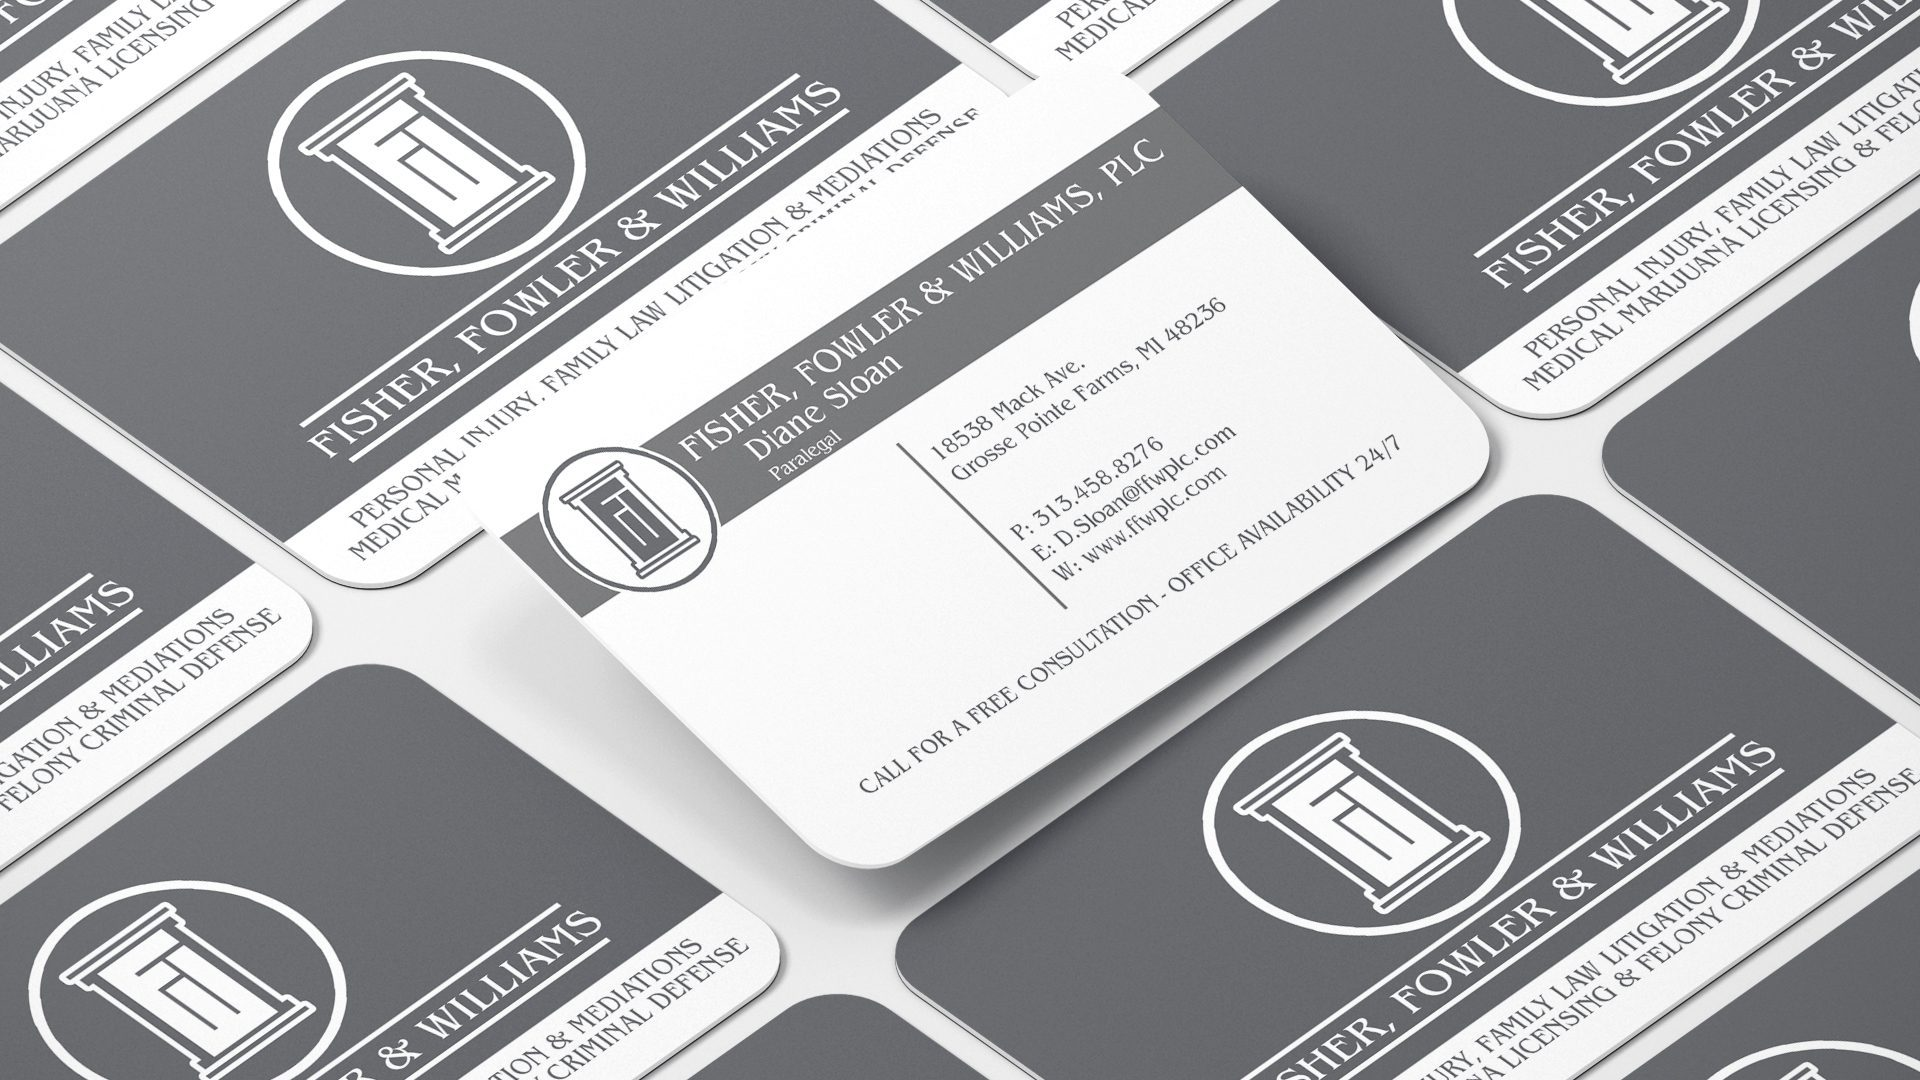 Fowler and Williams – Matte Business Card with Rounded Corners Mockup 03